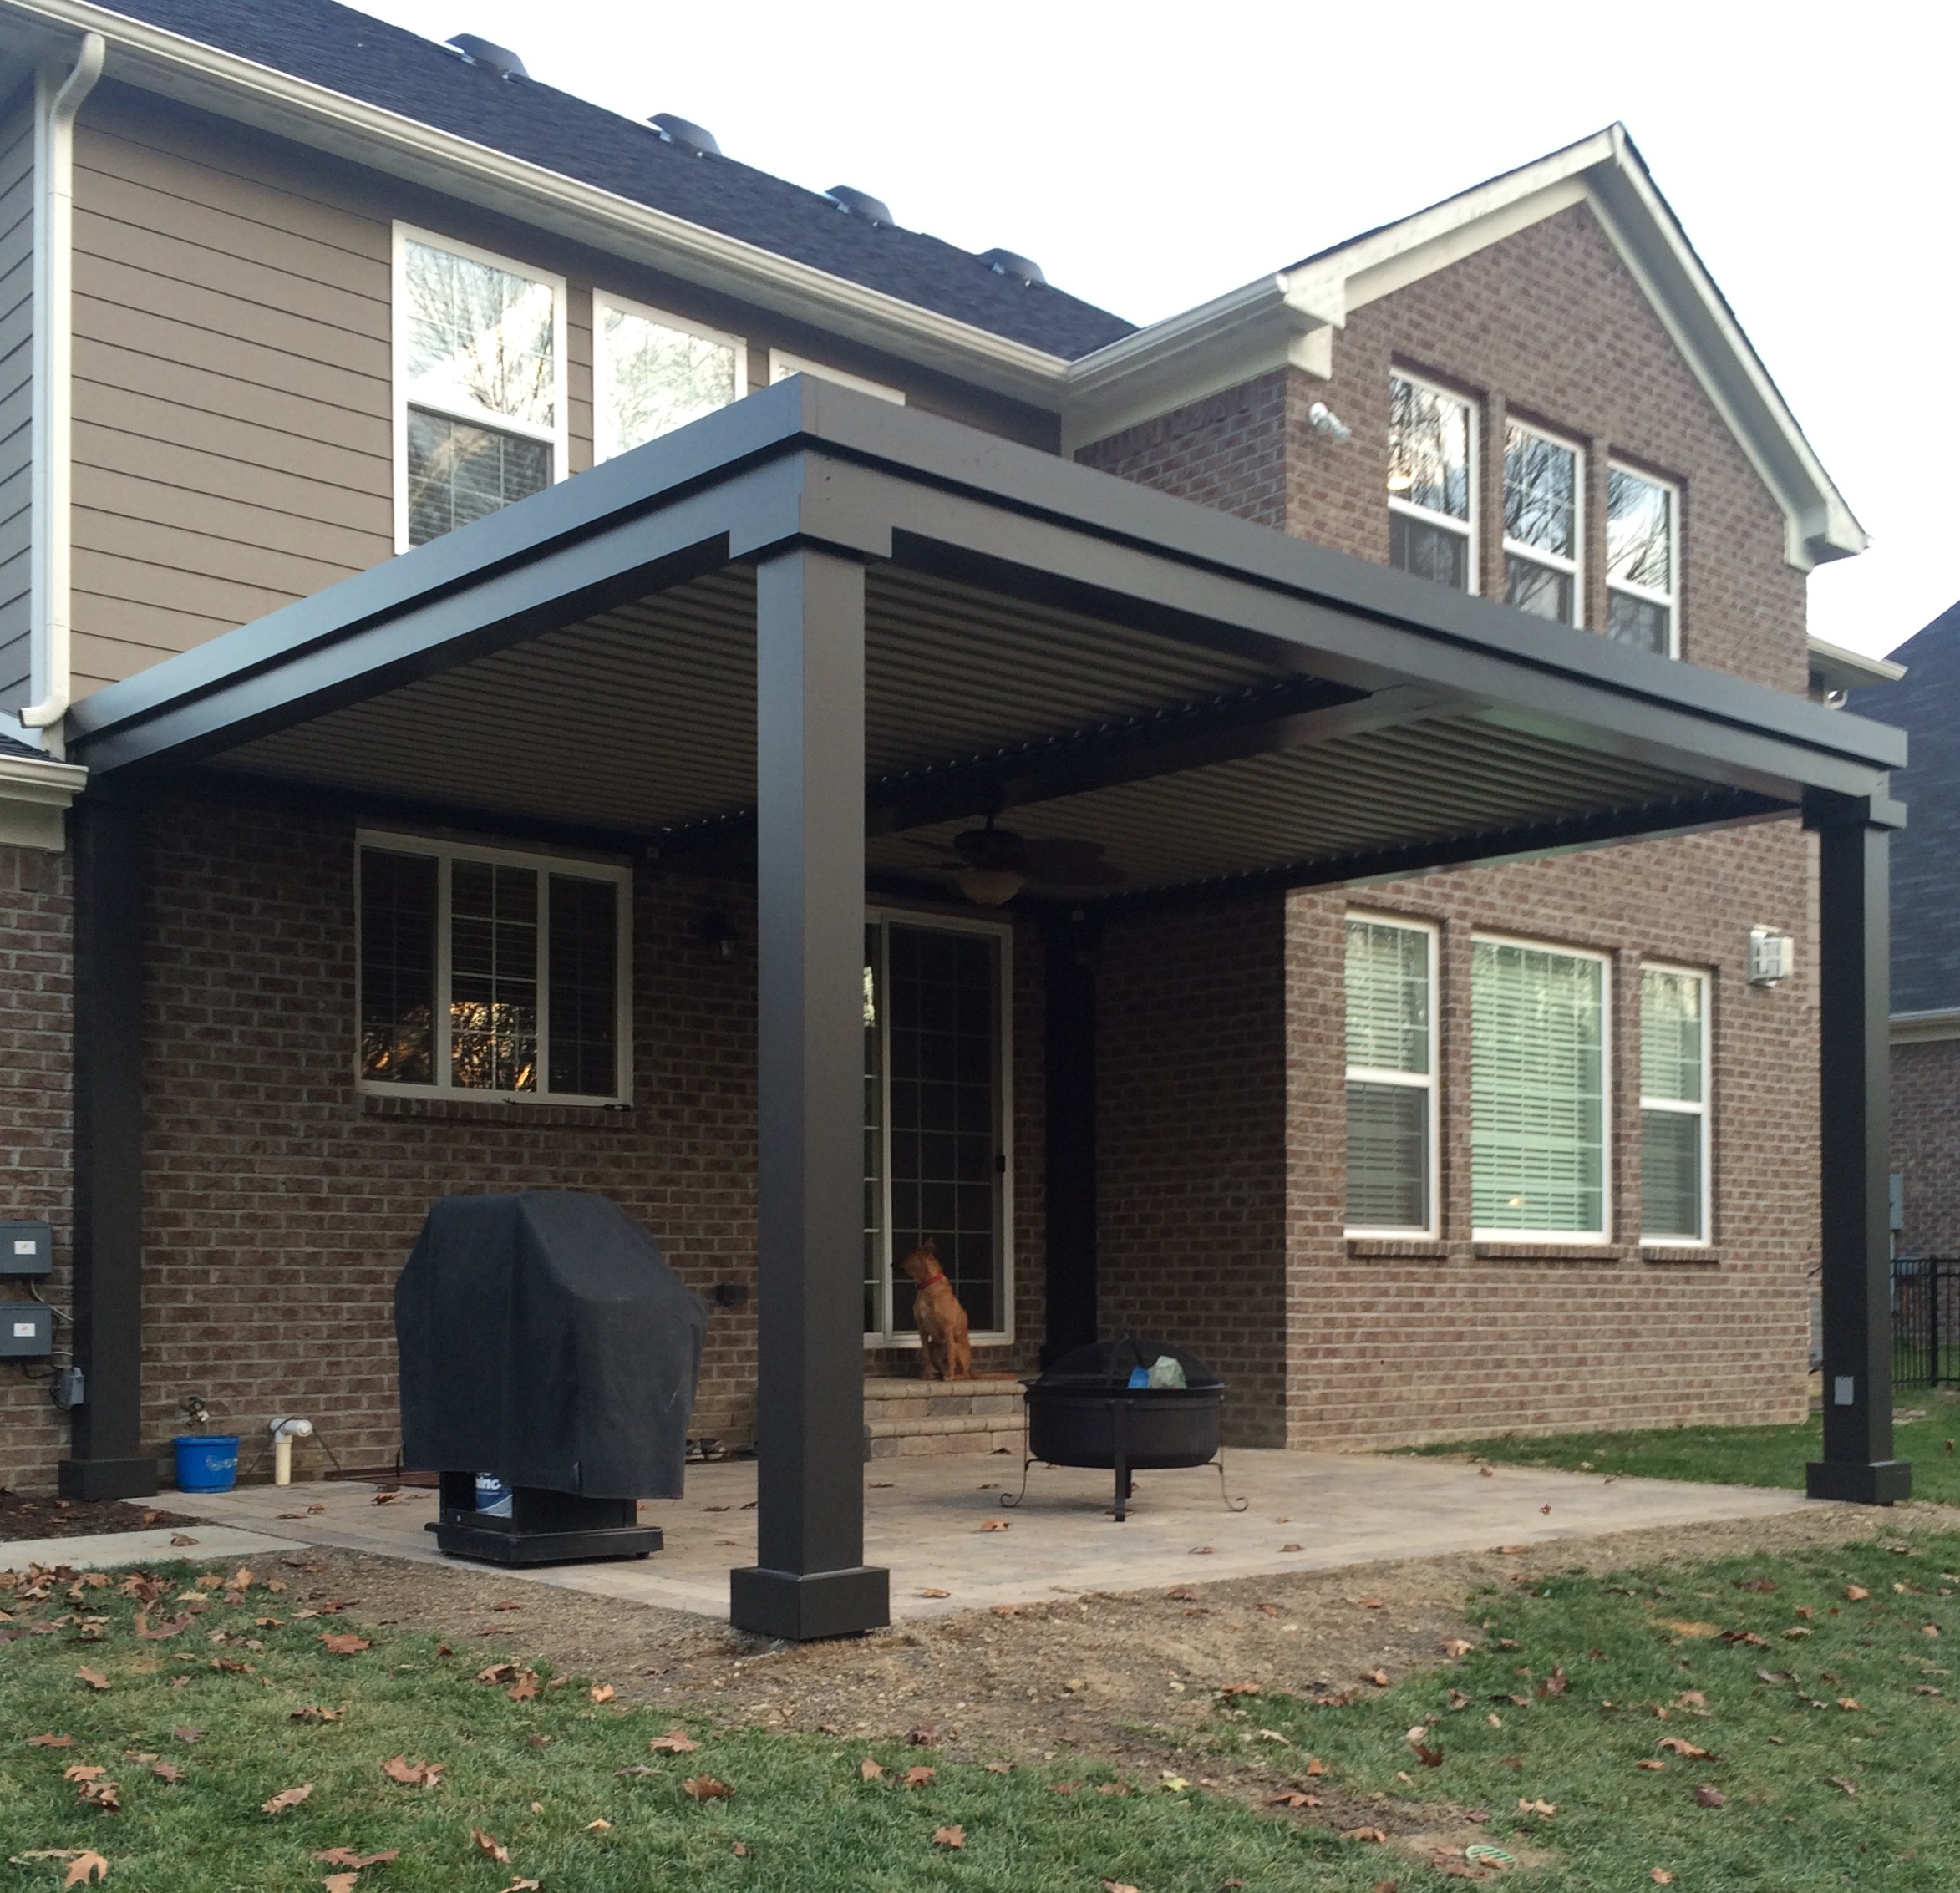 Zionsville, IN - Patio cover - Free standing